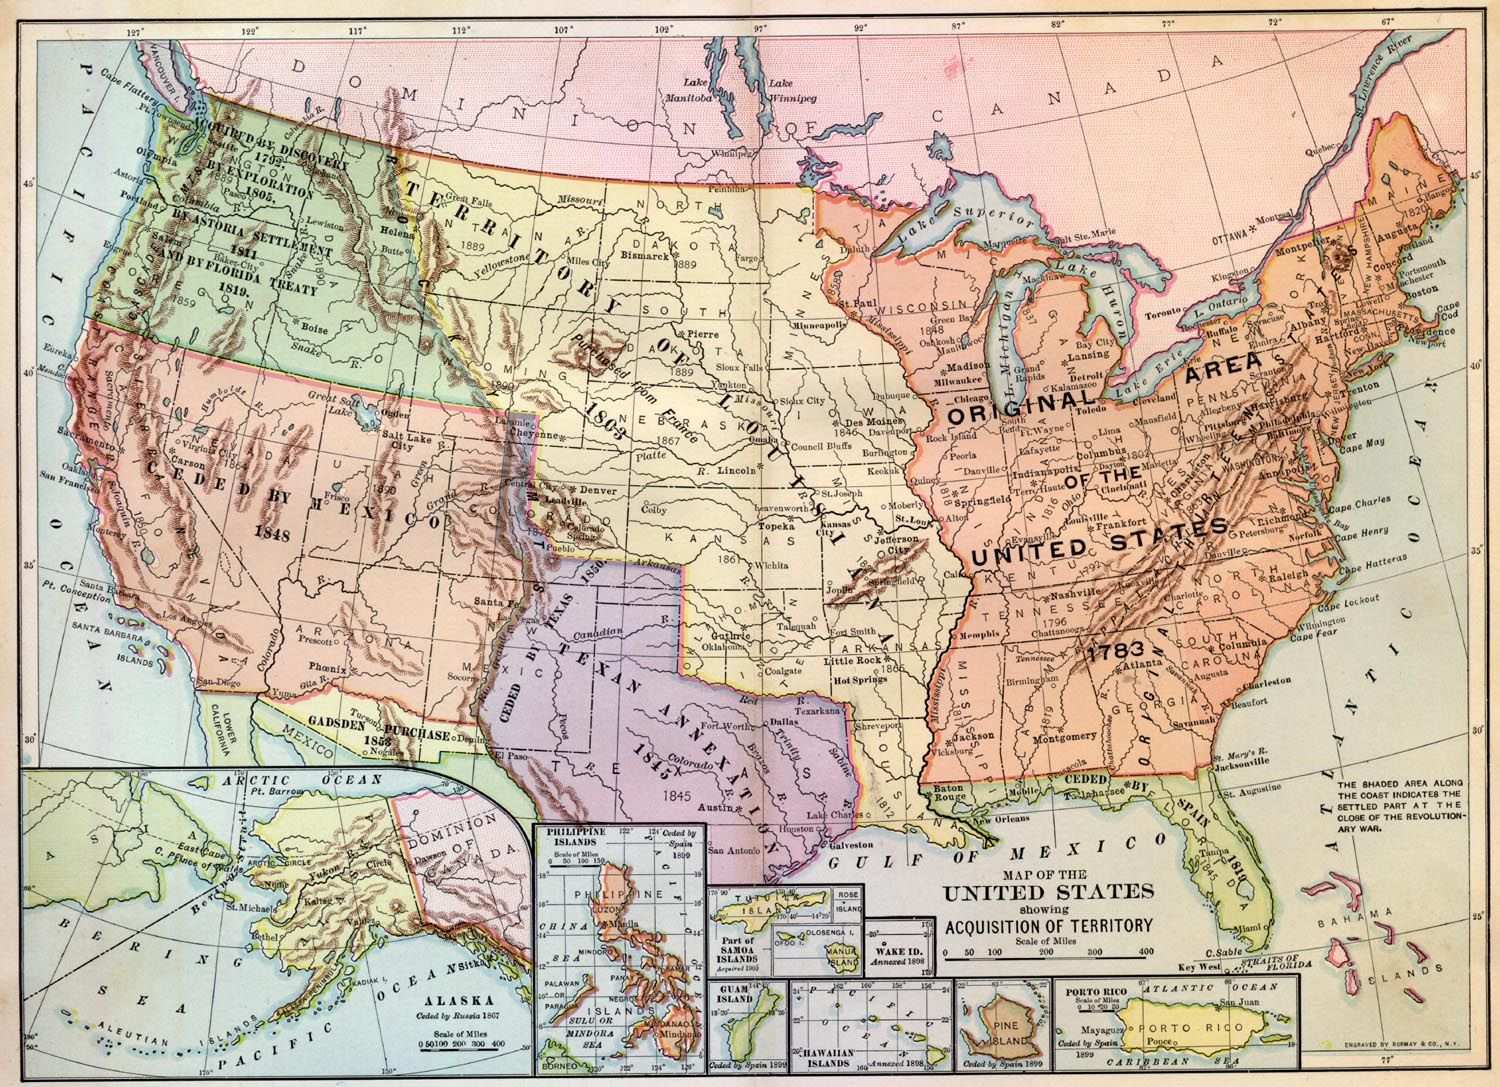 Map Of Texas And Louisiana Border.Great Site For Maps Of Westward Expansion Civil War In The South